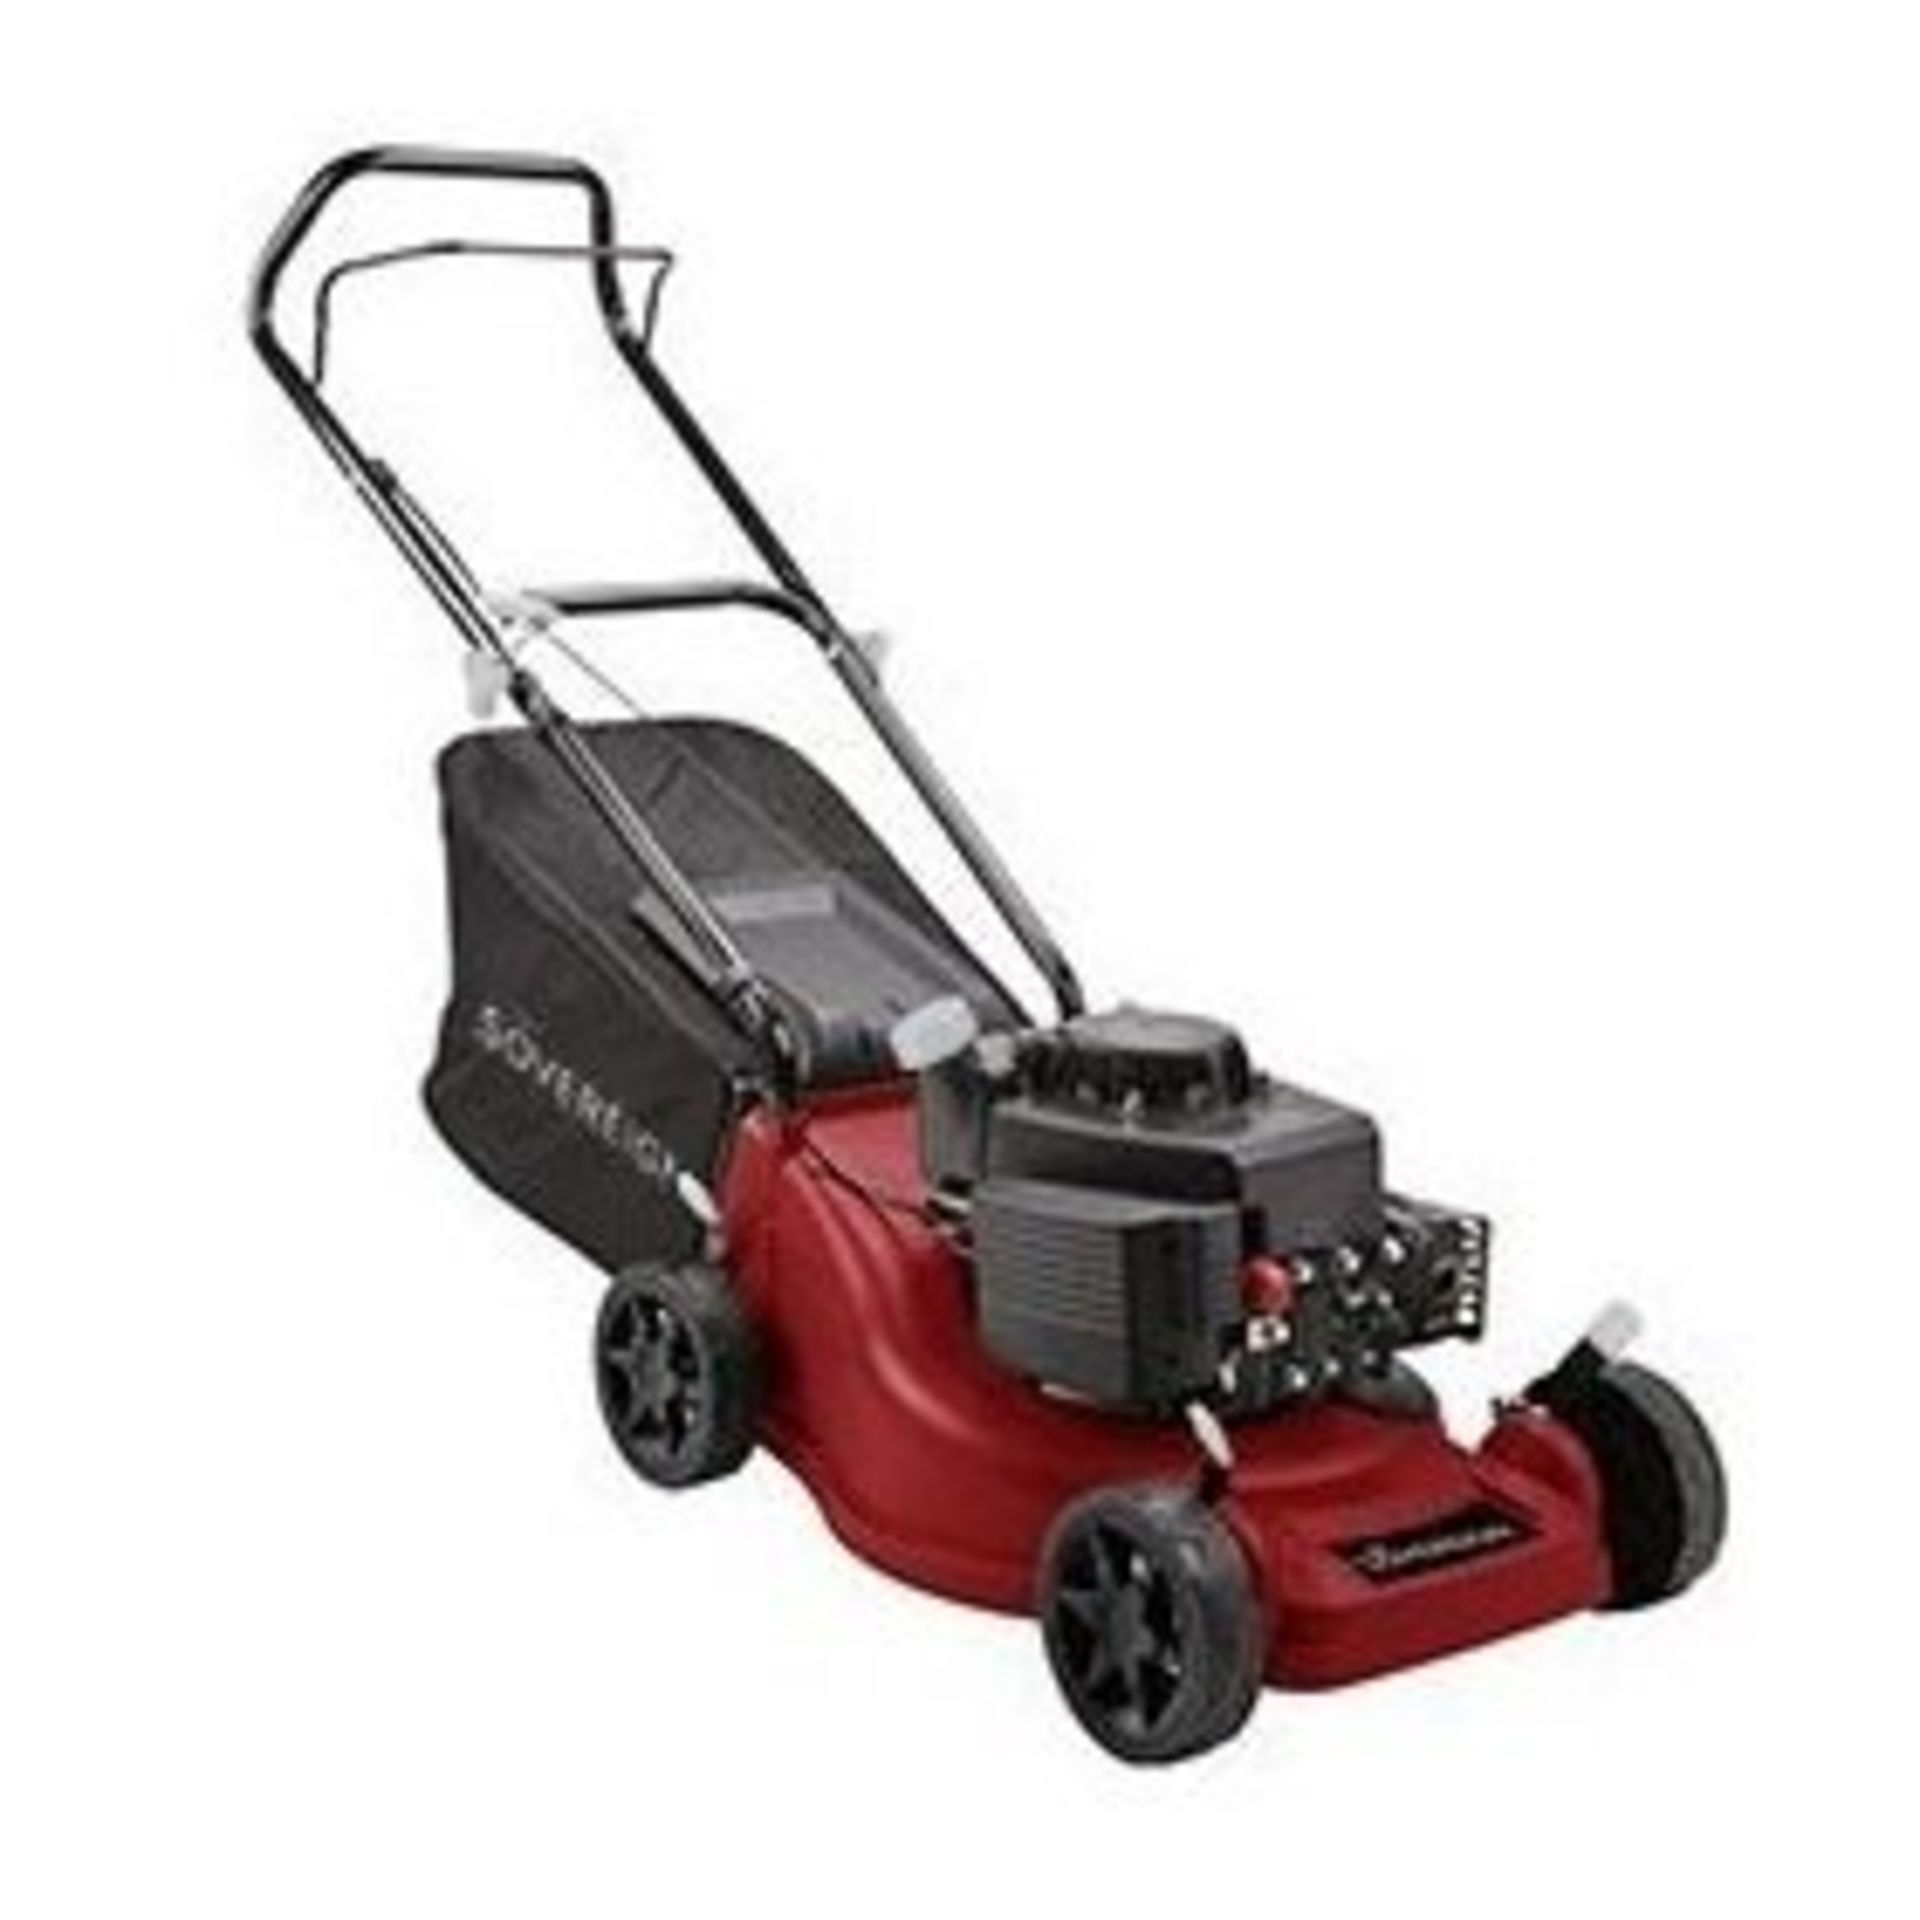 (P10) 1x Sovereign 40cm Push Petrol Lawn Mower 127cc RRP £125. New, Sealed Item With Damage To Box